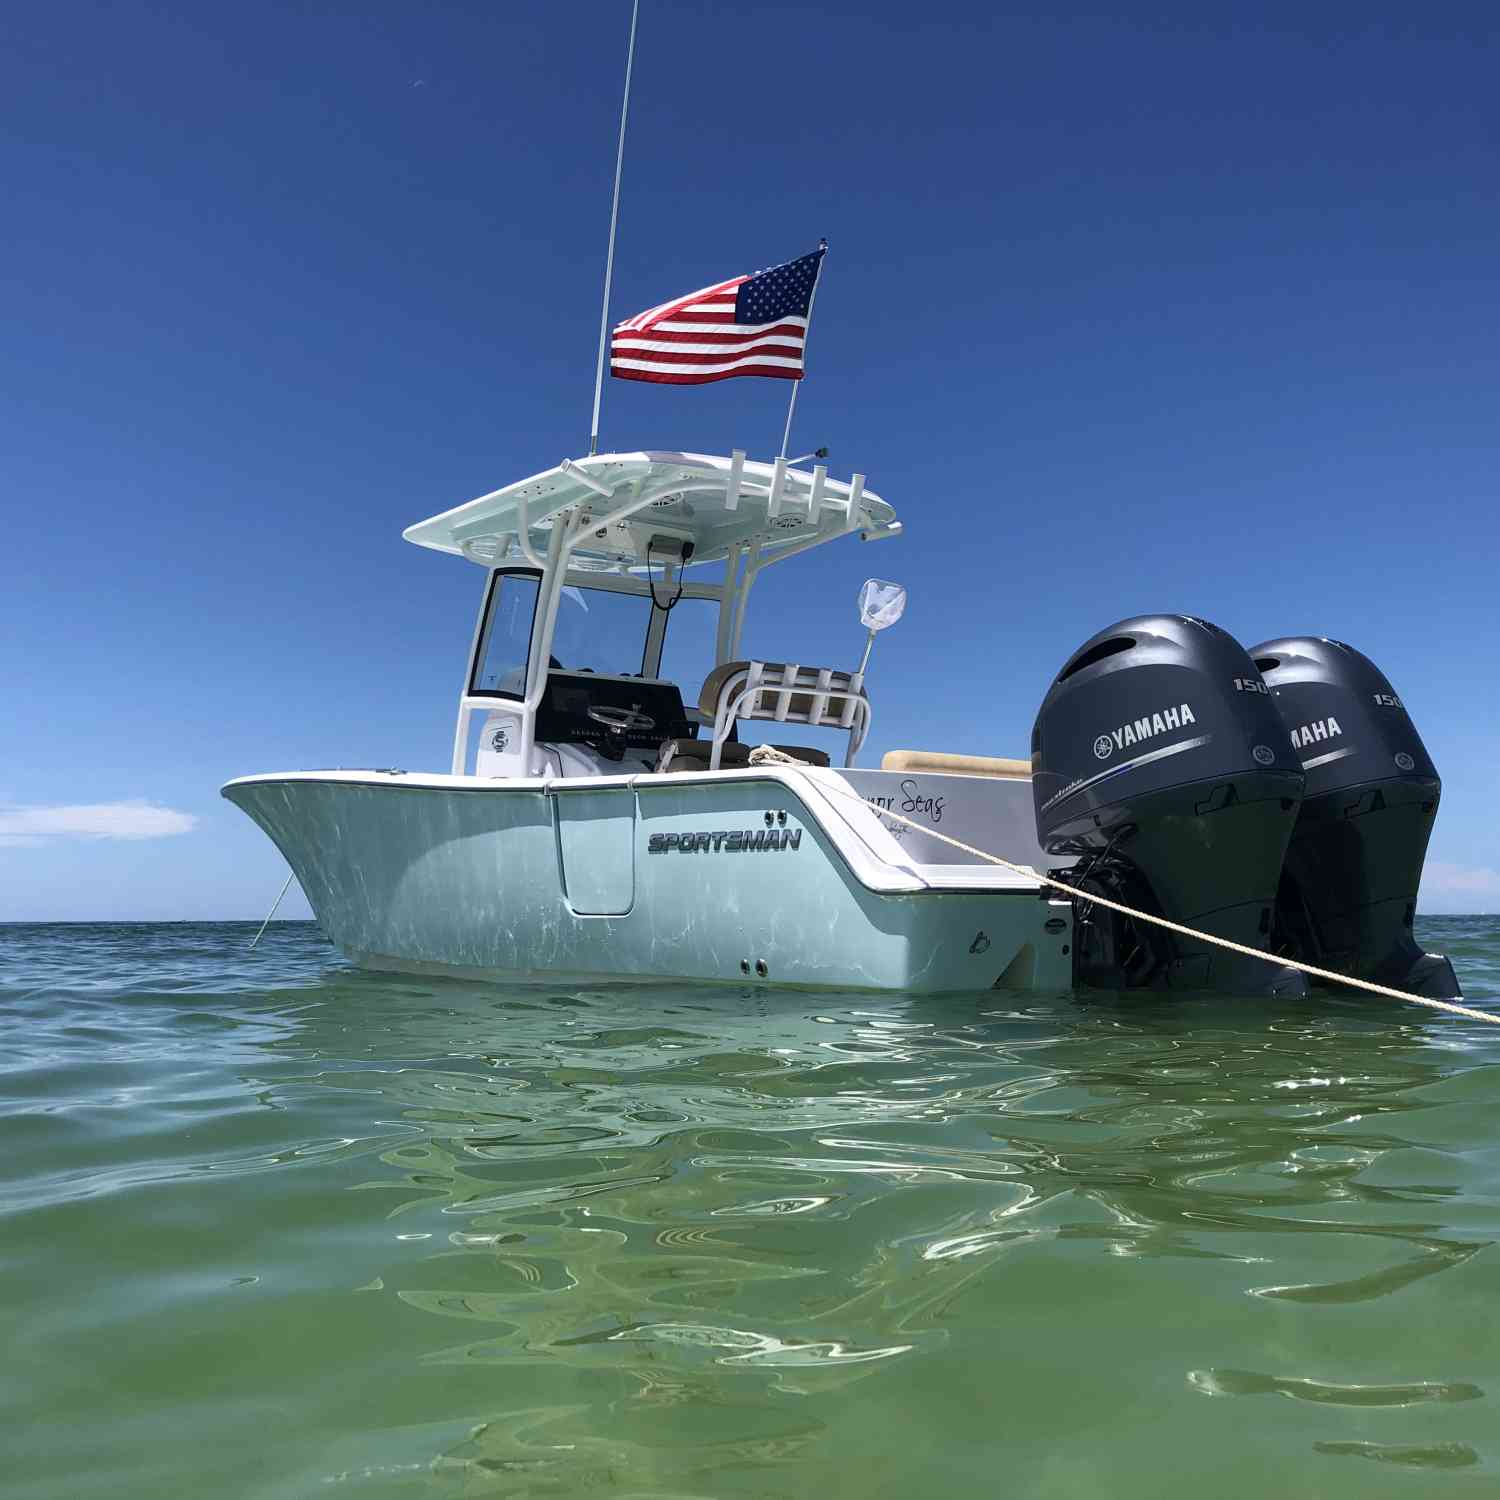 Title: Letting Freedom Ring! - On board their Sportsman Open 252 Center Console - Location: St. Petersburg, Florida. Participating in the Photo Contest #SportsmanSeptember2019